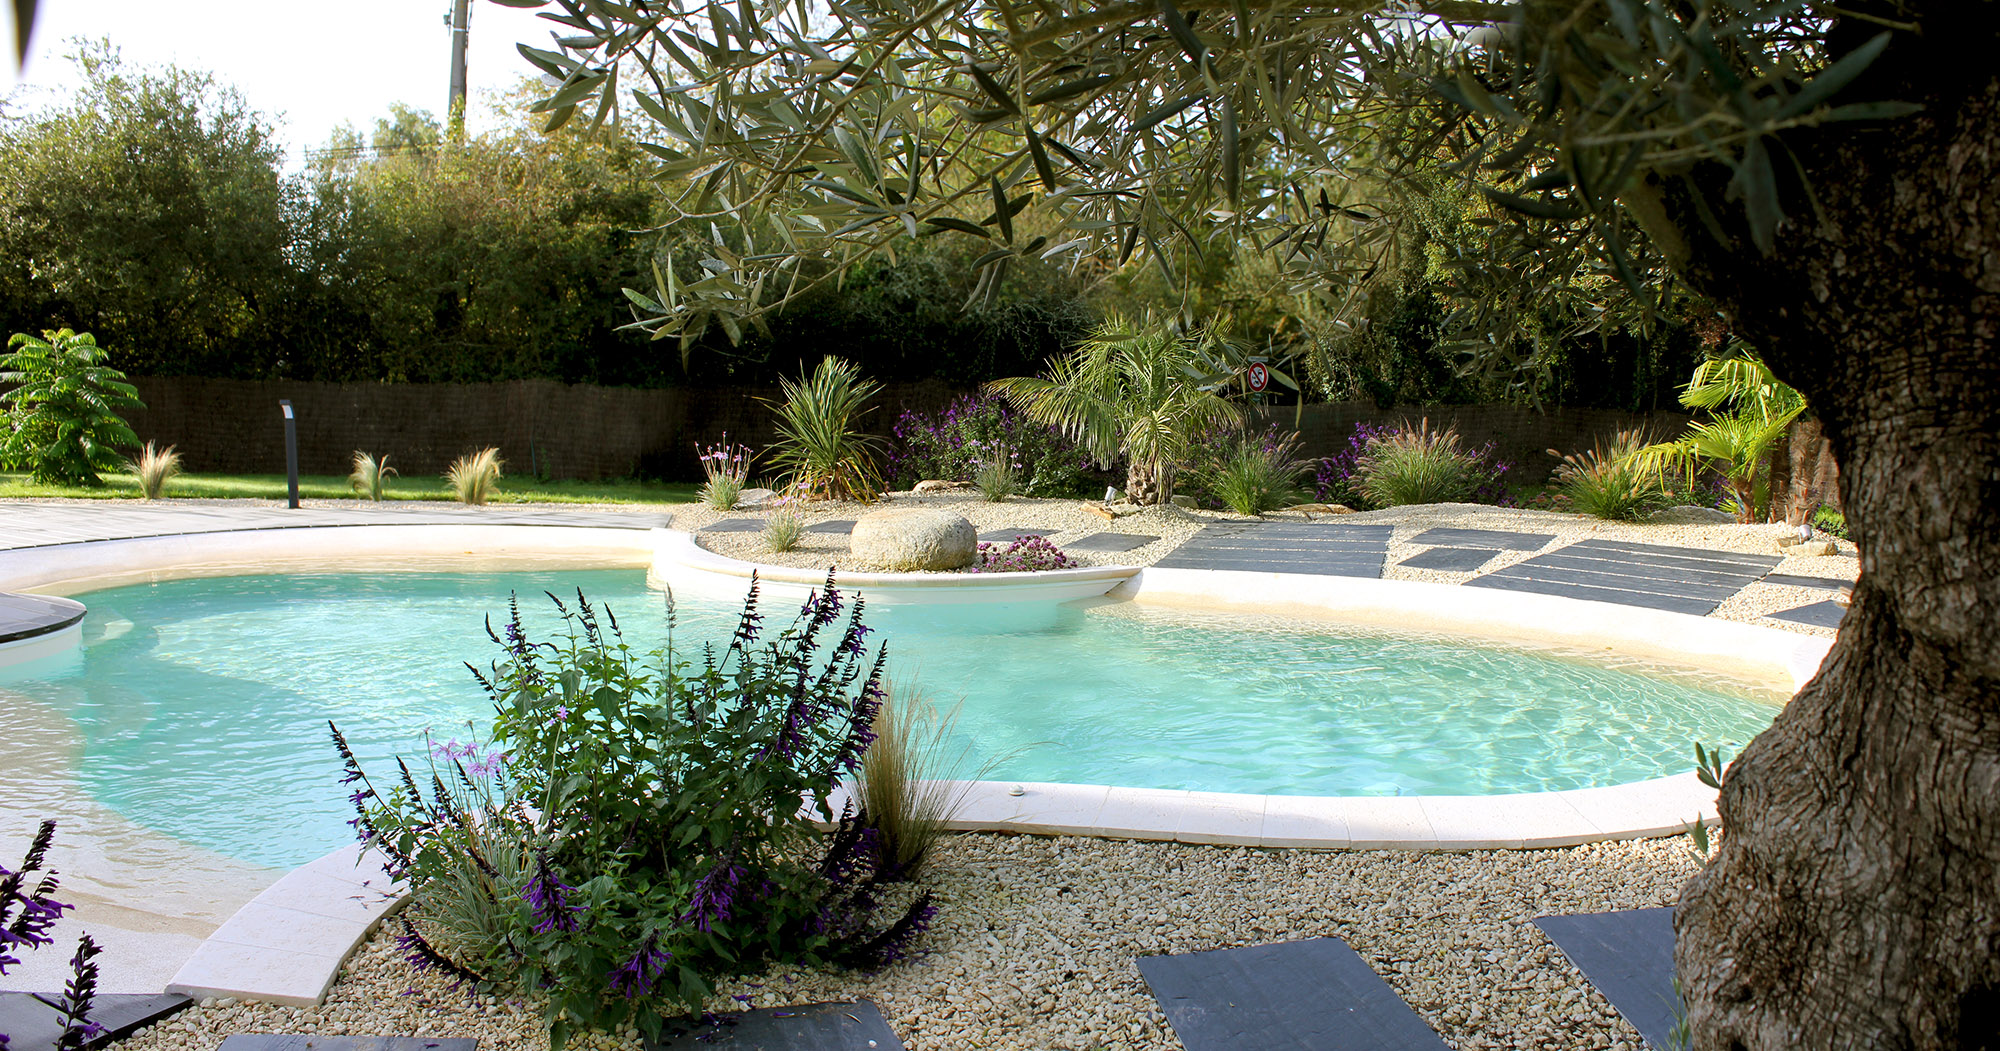 Tour de piscine saint andr des eaux 44 dreamis for Piscine guerande 44